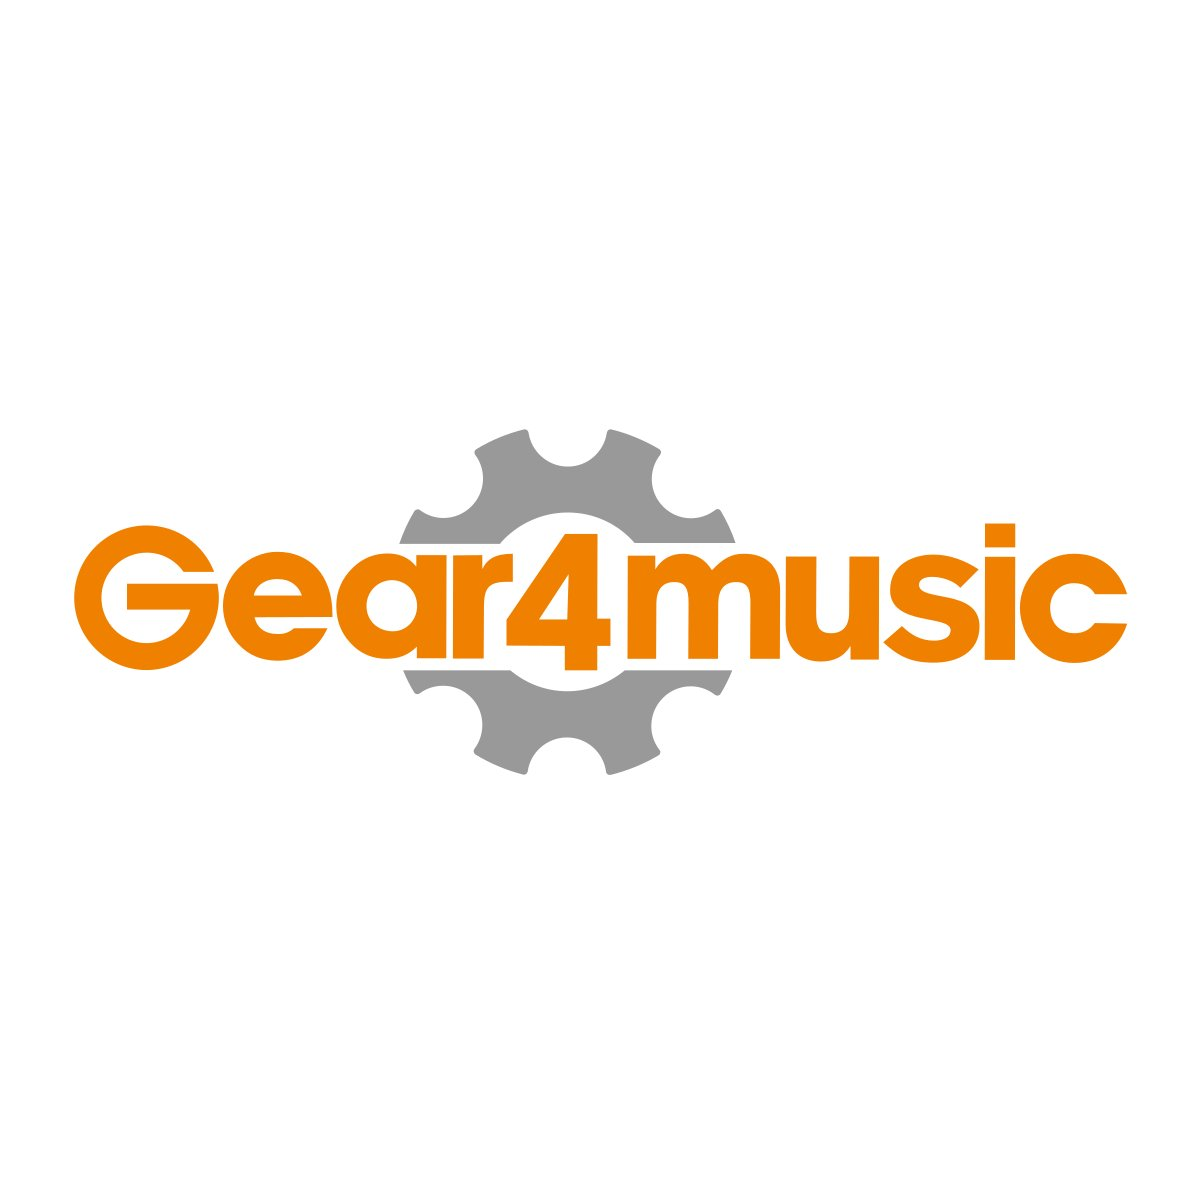 USBMK-7000 - Teclado Gear4music